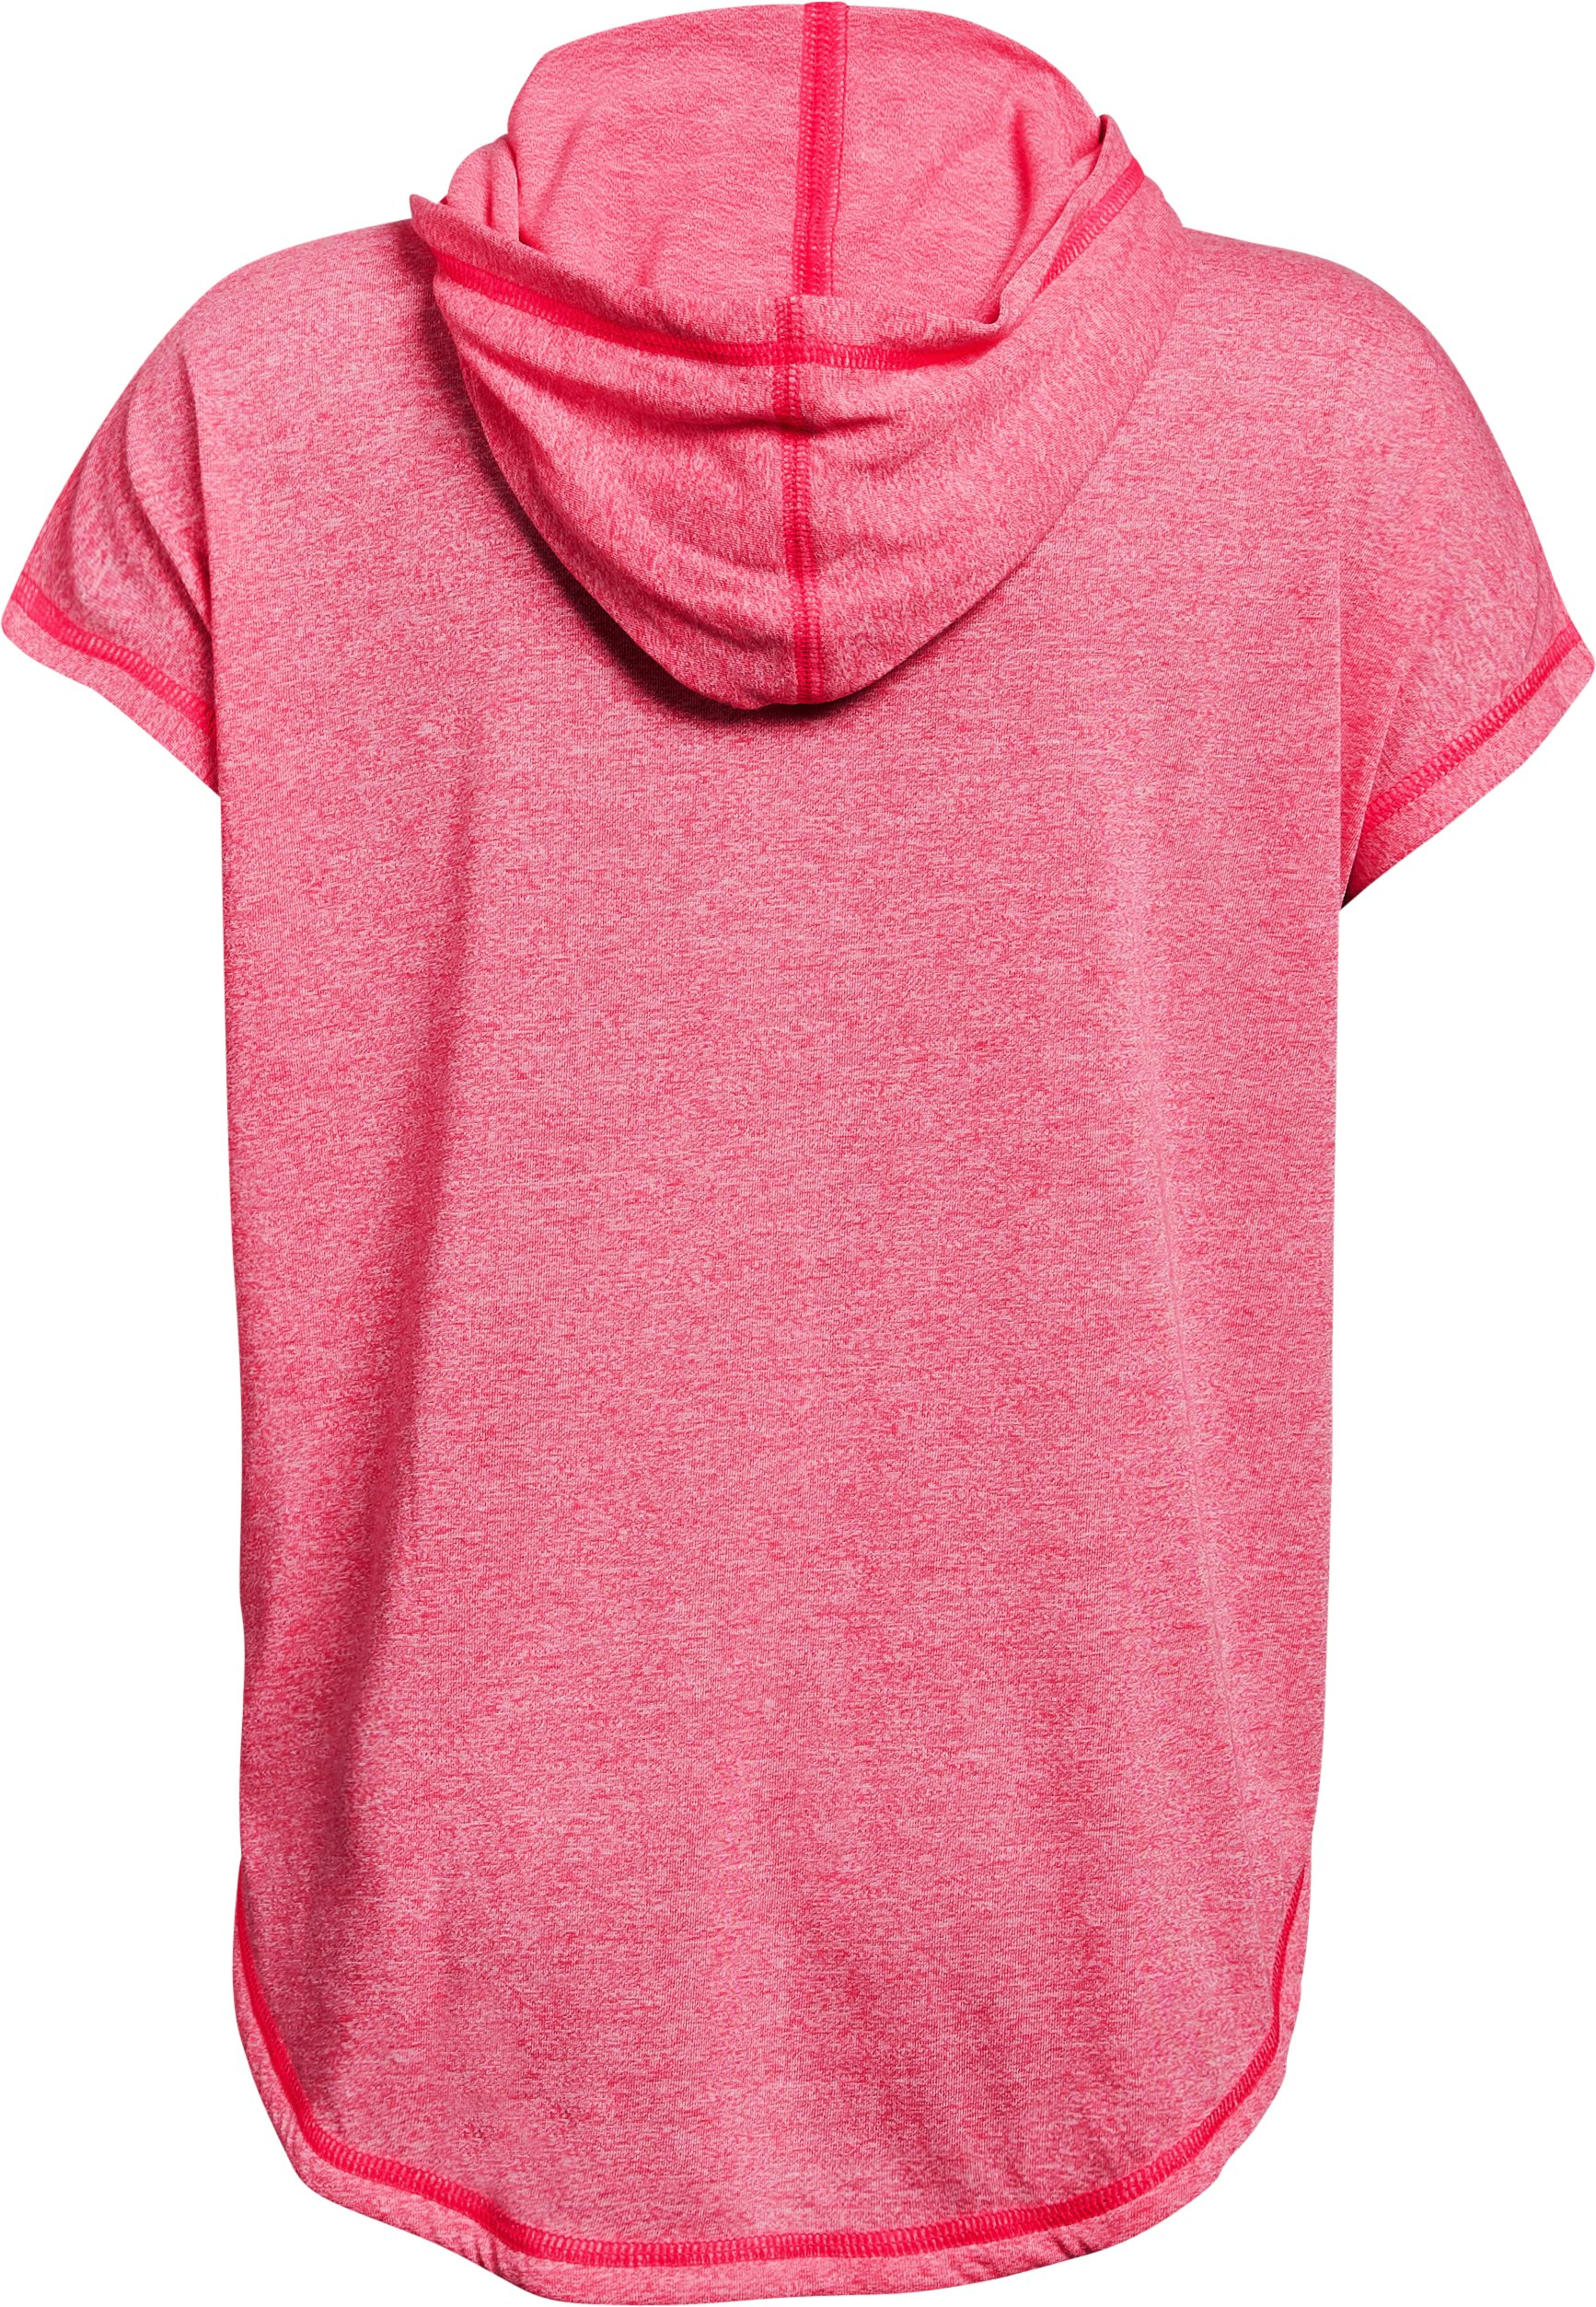 Girls' UA Siro Short Sleeve Hoodie, PENTA PINK FADE HEATHER,